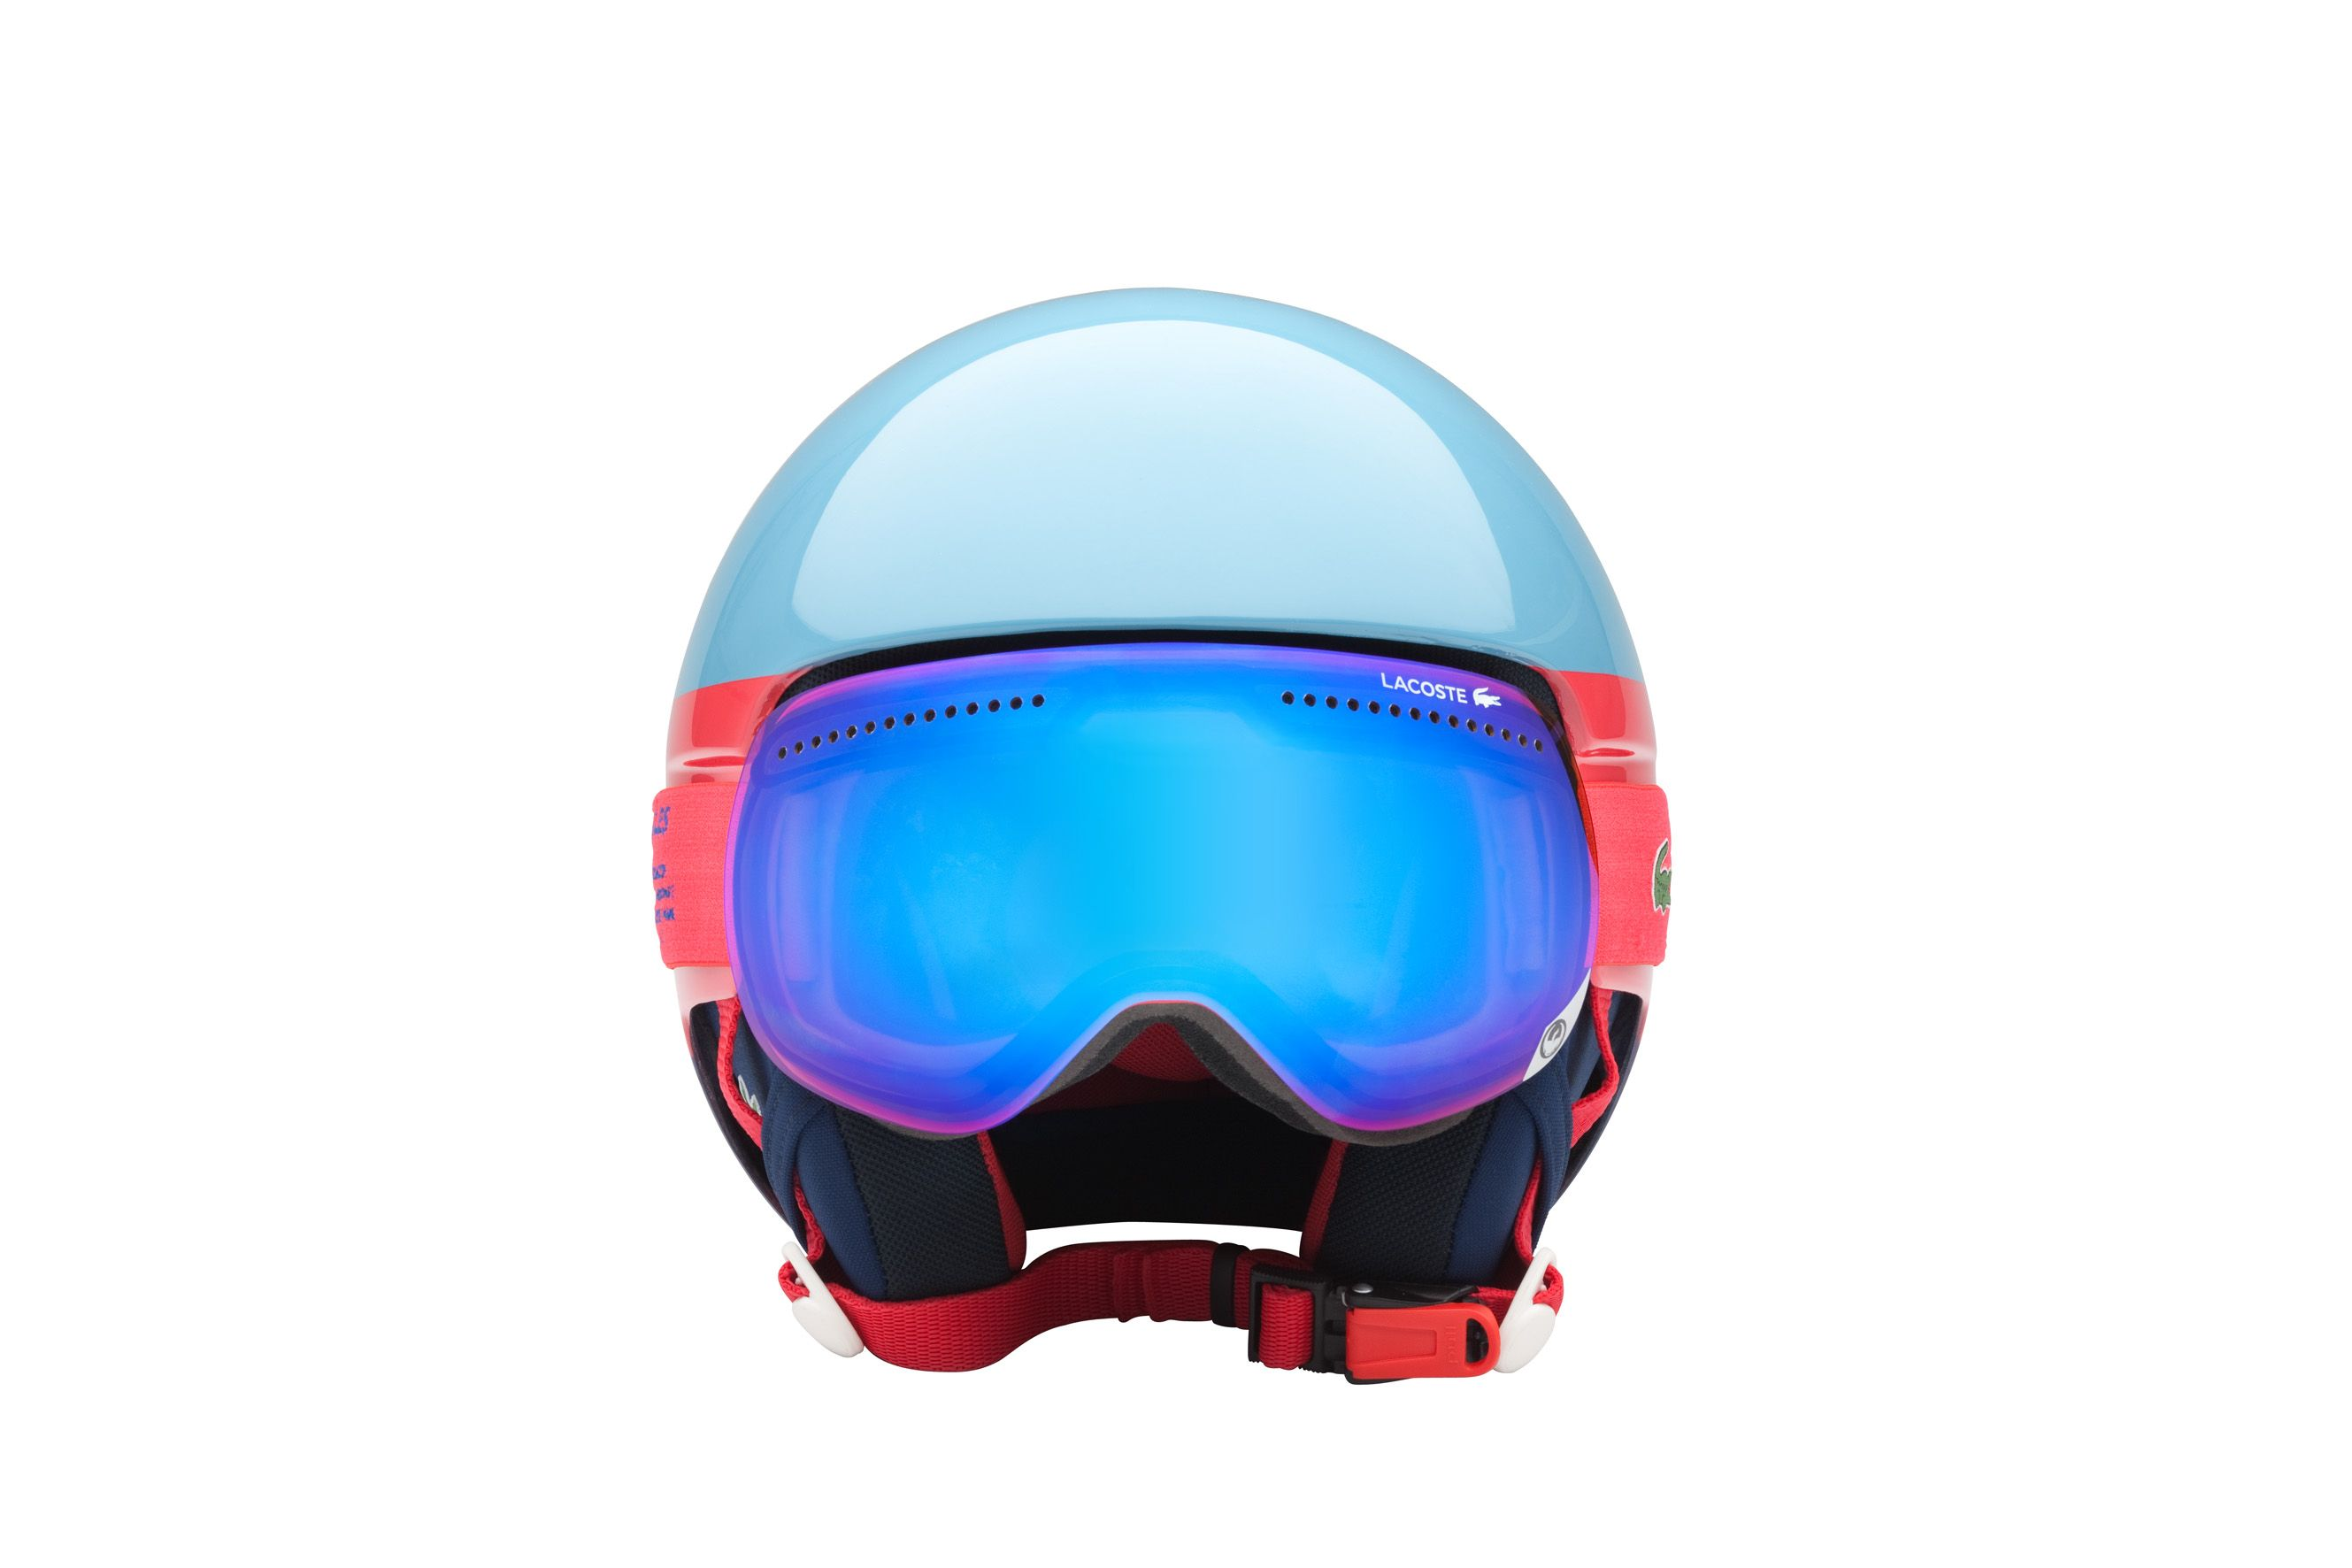 Lacoste Lab for Lacoste L!VE Snow Helmet. Engineered by